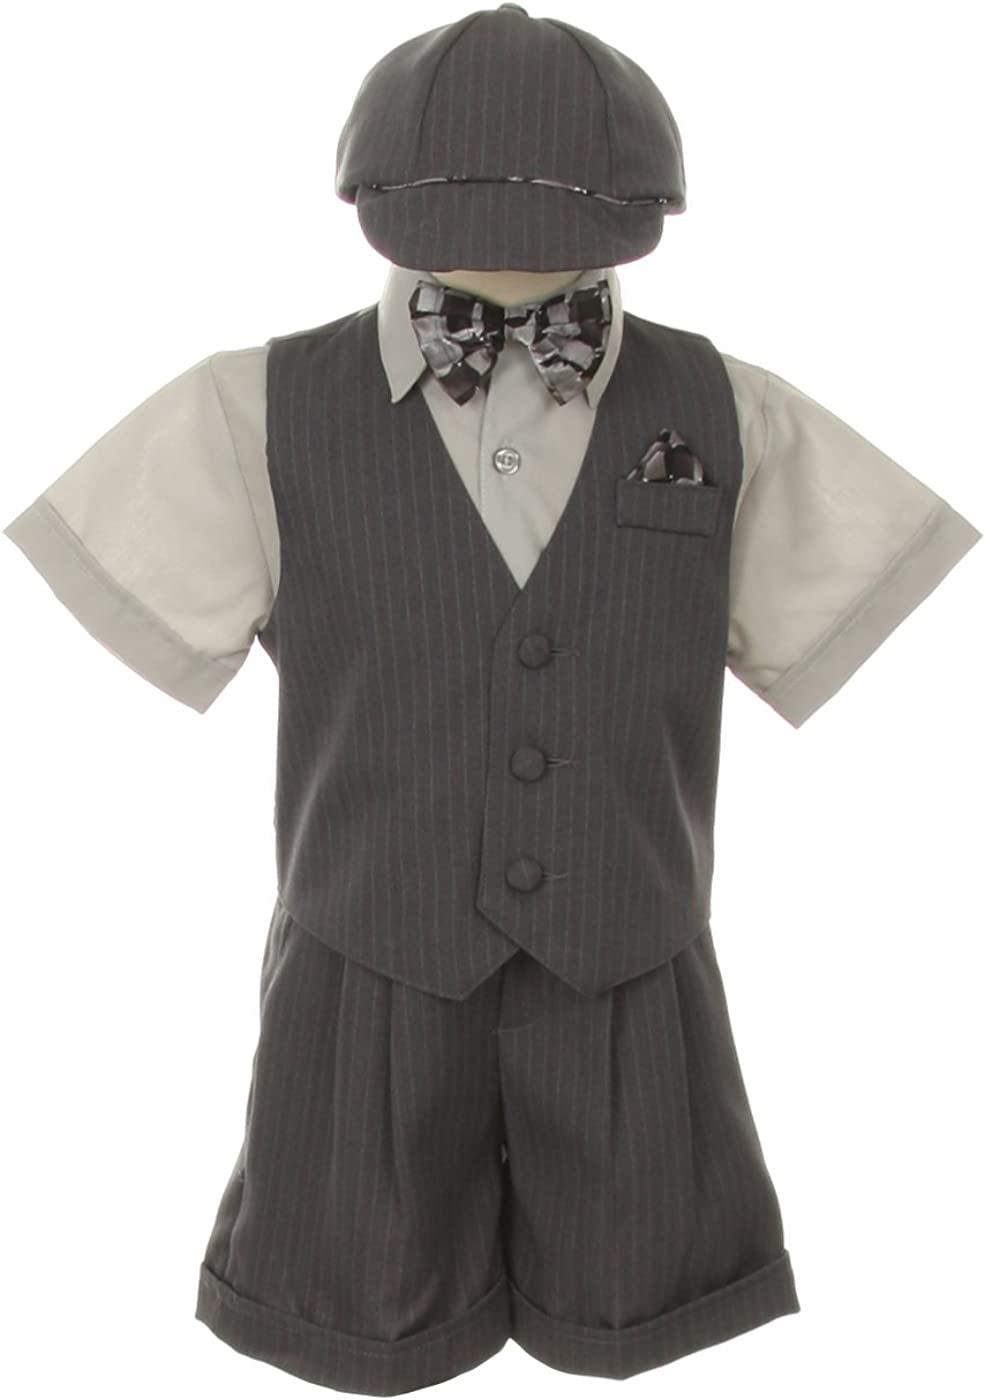 Dress Shorts Suit Tuxedo Outfit Set-Infant Baby Boys /& Toddler,Gray Pinstripe